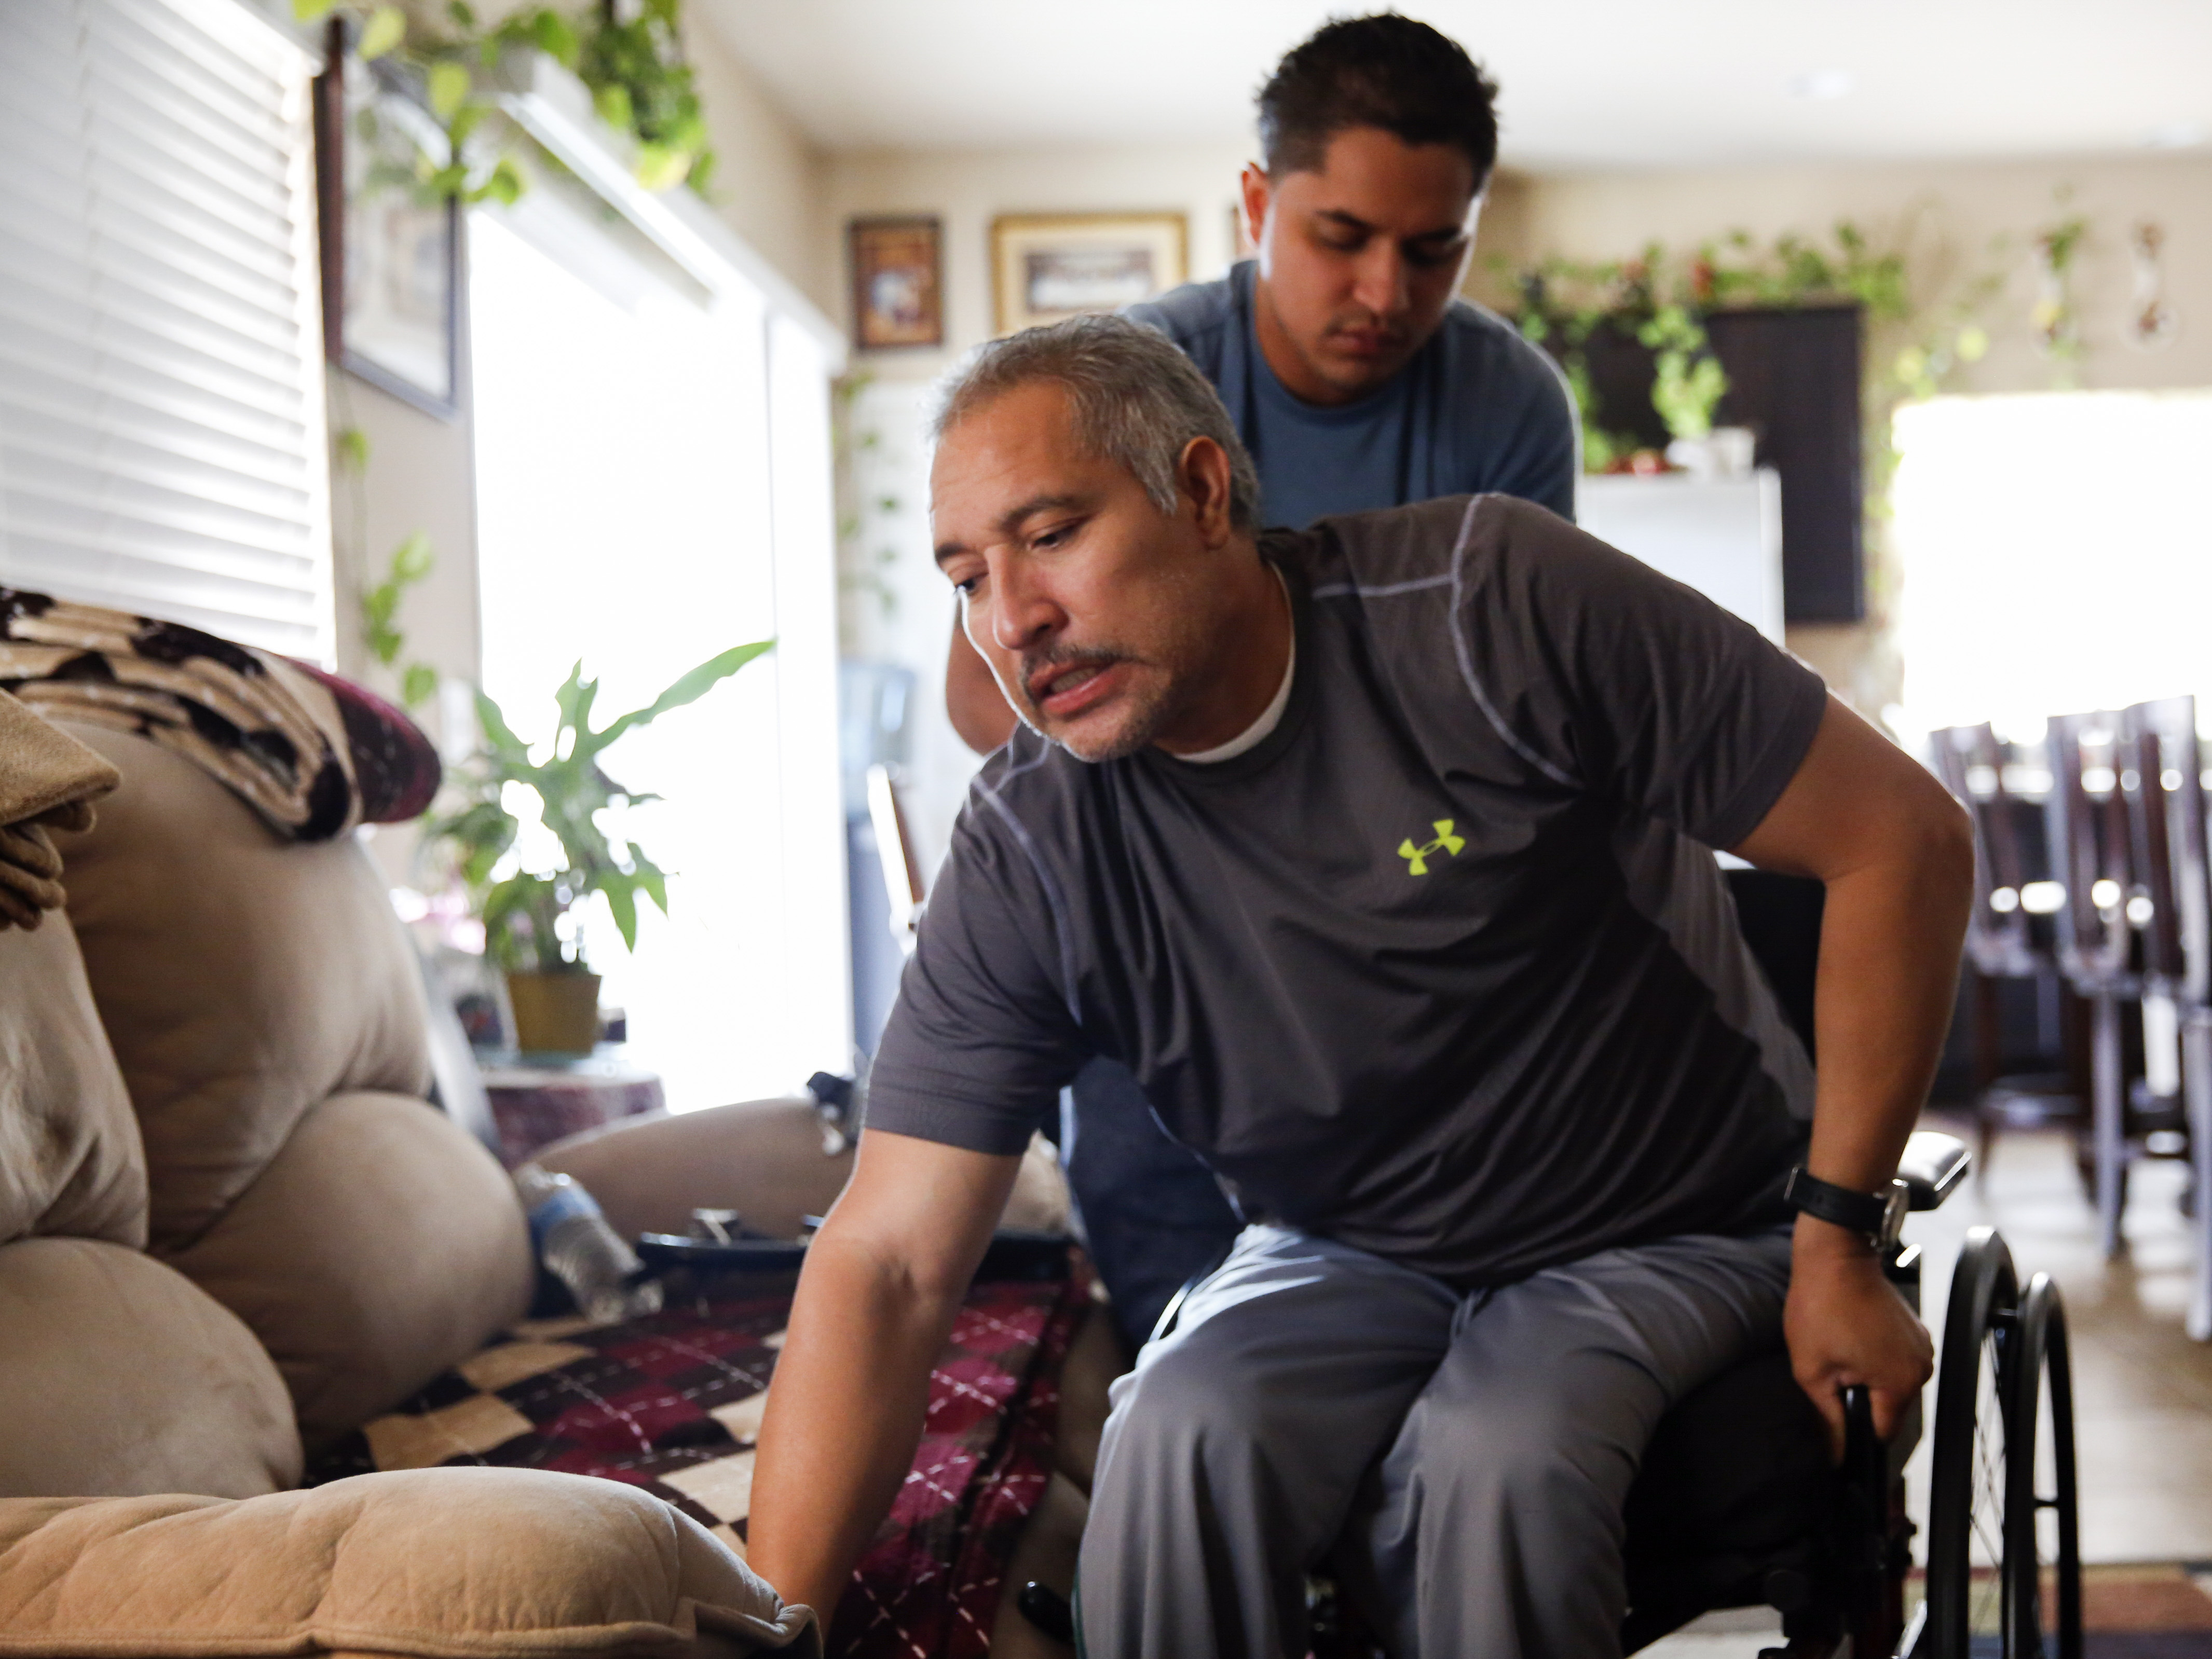 Workers Compensation Benefits For Home Health Aide Worker